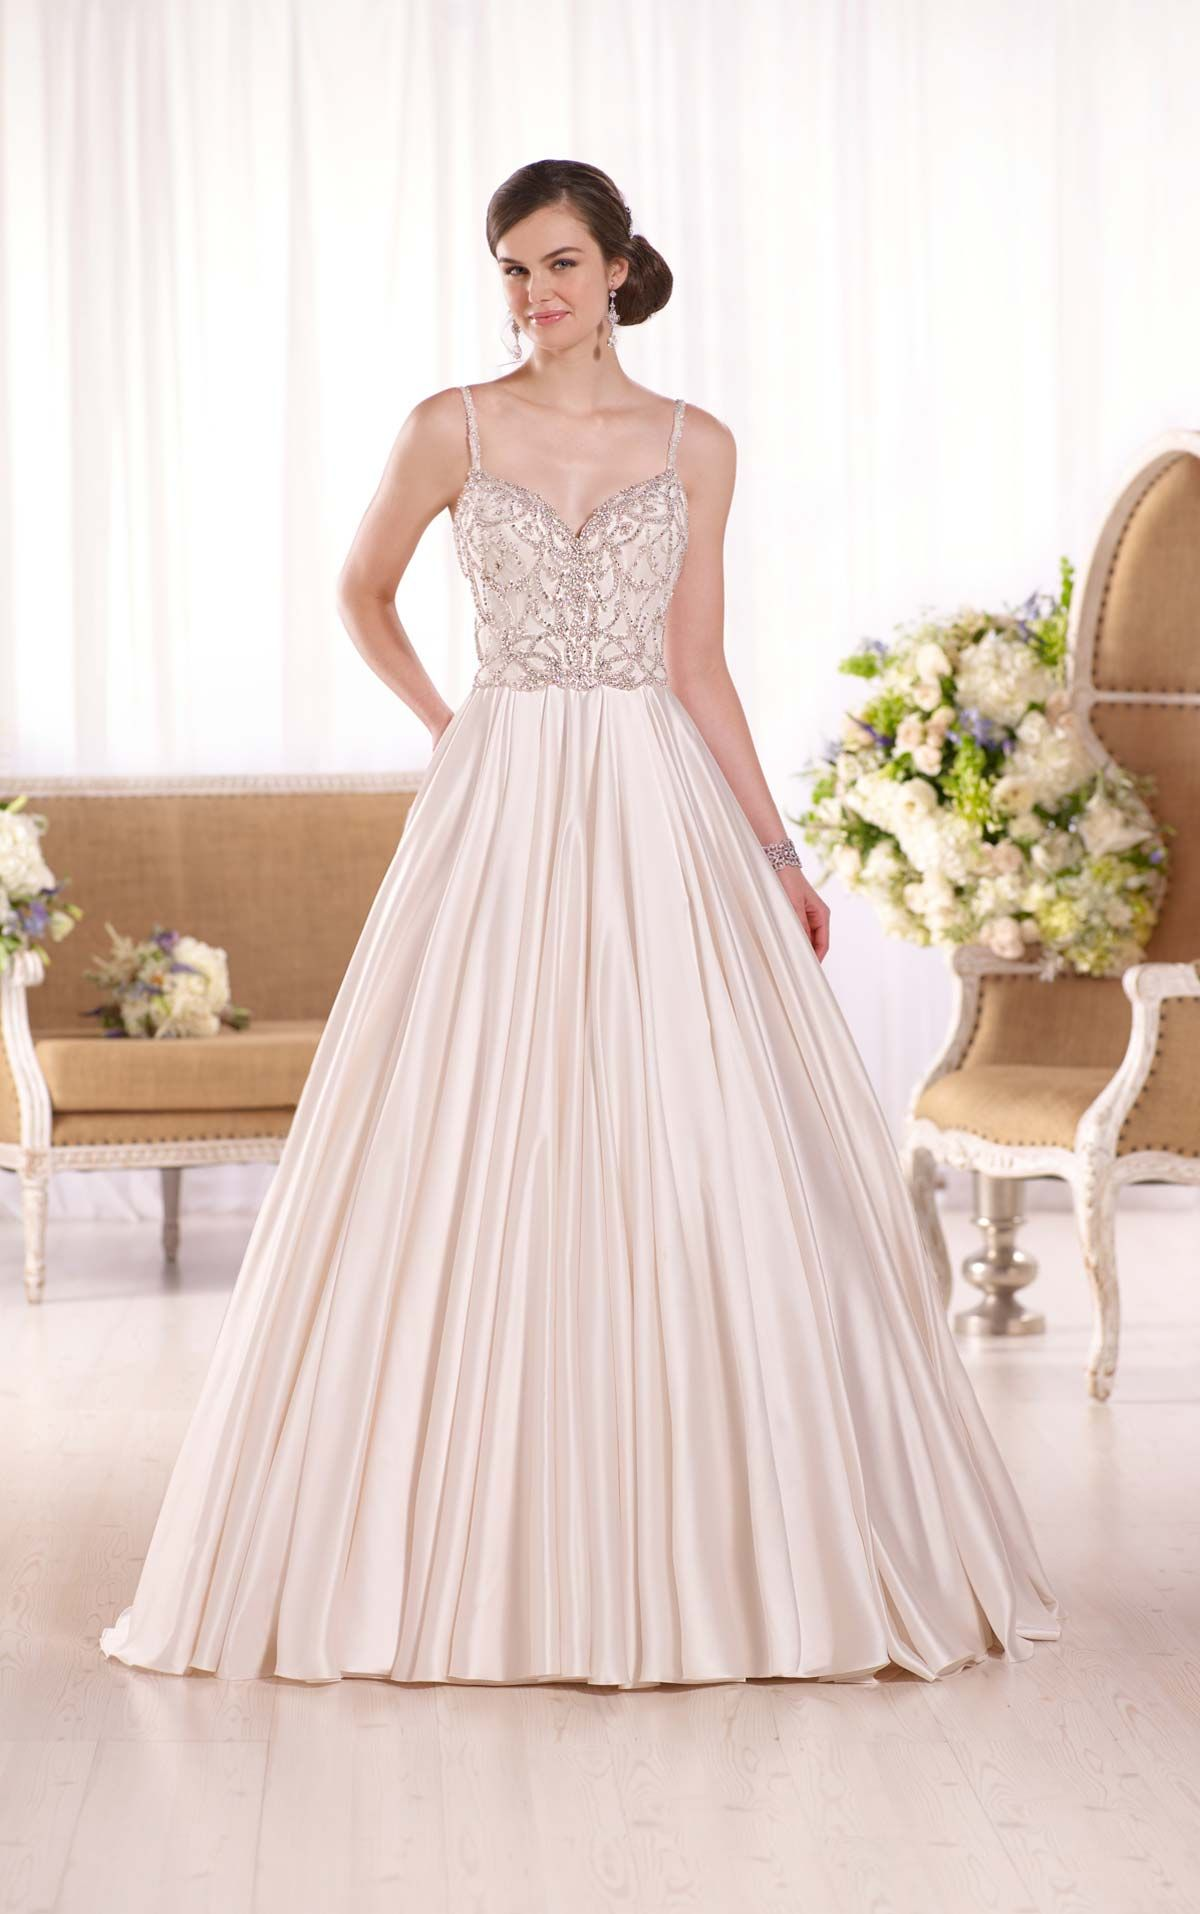 Palatial and sophisticated, this Luxe satin bridal gown from Essense ...